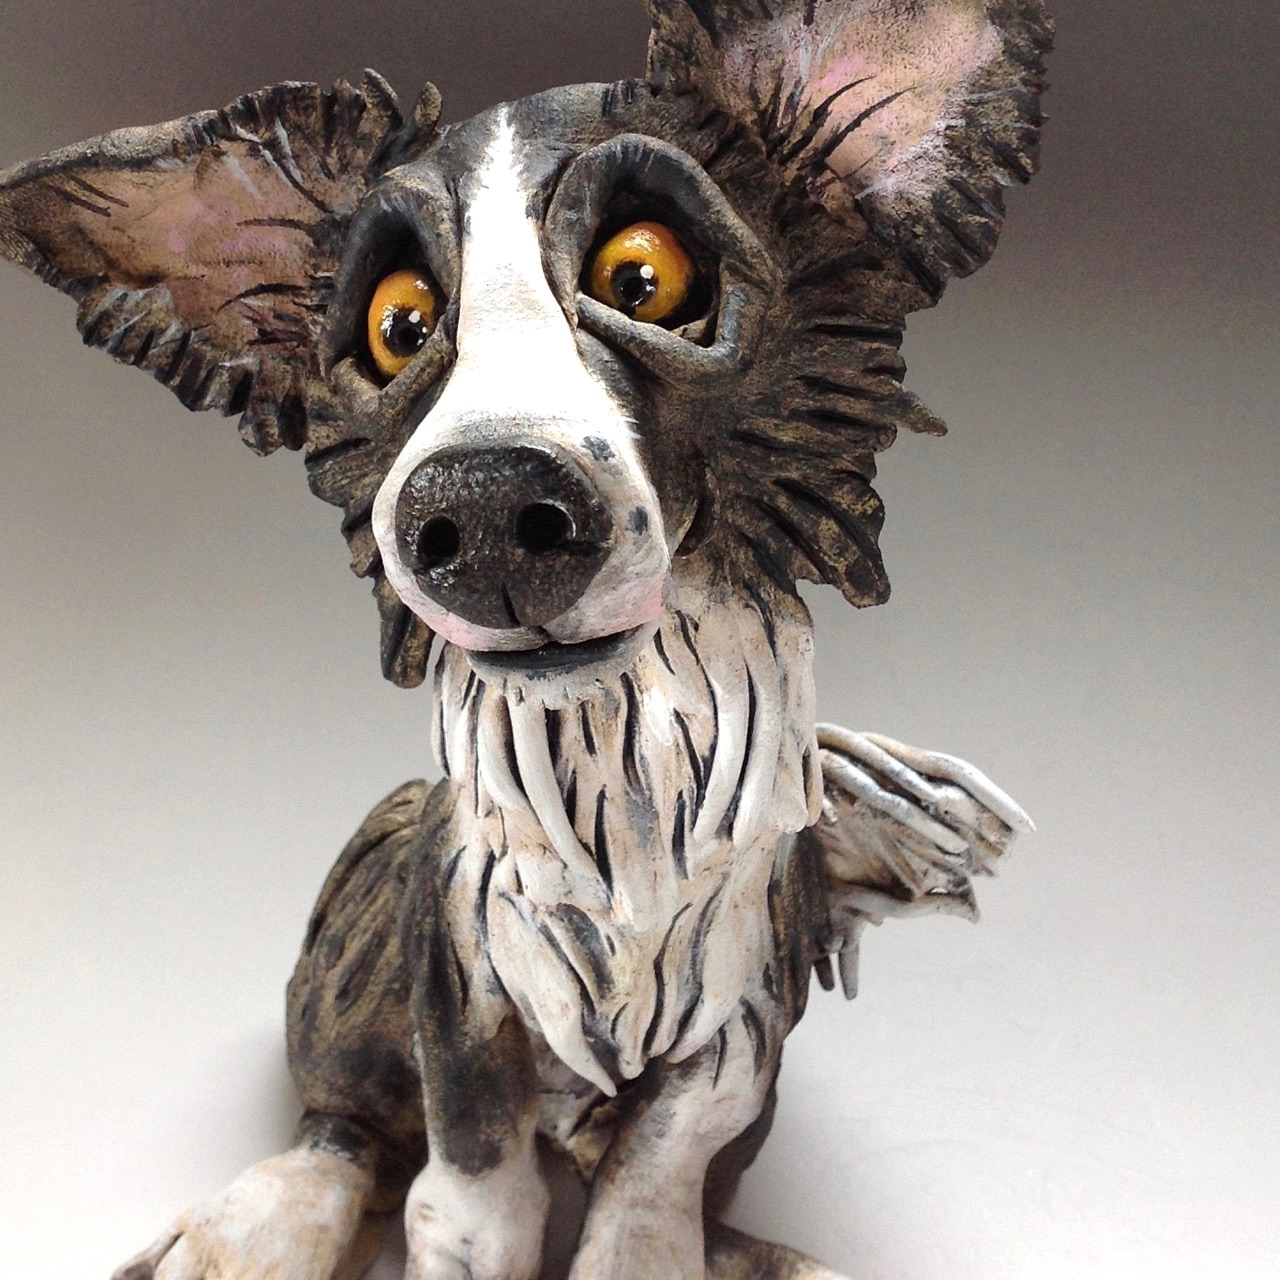 Border Collie Dog Sculpture Ceramic Pottery